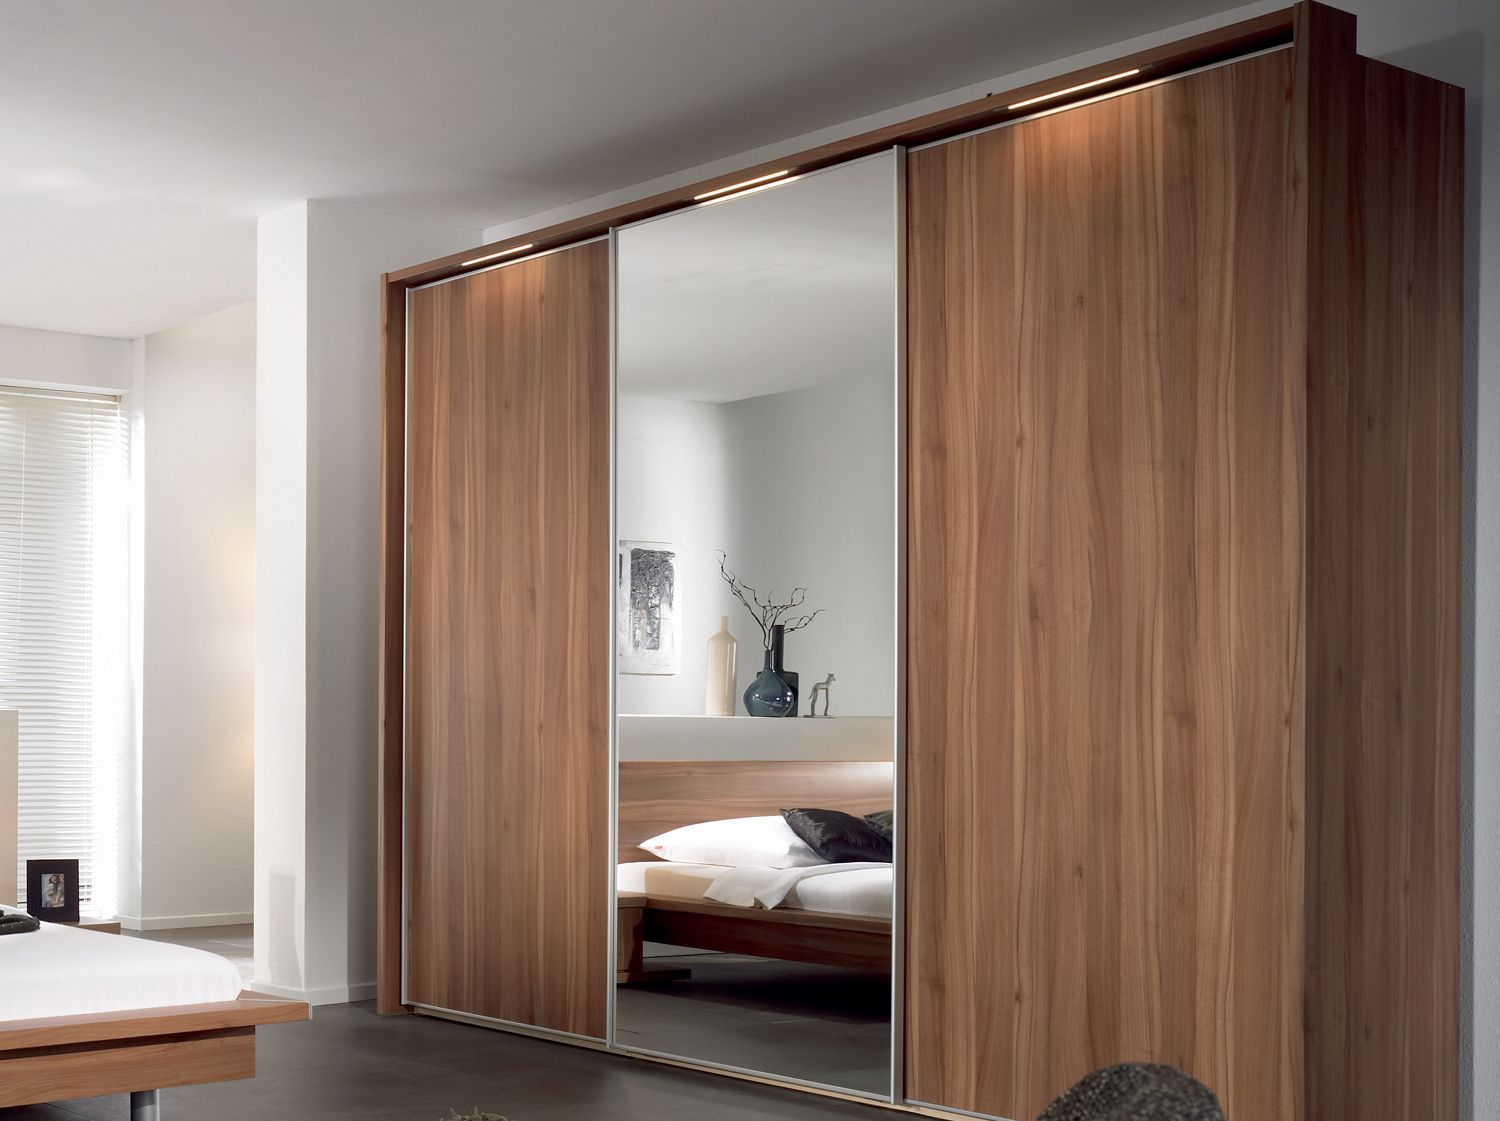 Http Www Dansk Co Uk Prodzoomimg1649 Jpg Wardrobe Design Bedroom Contemporary Bedroom Design Sliding Wardrobe Designs